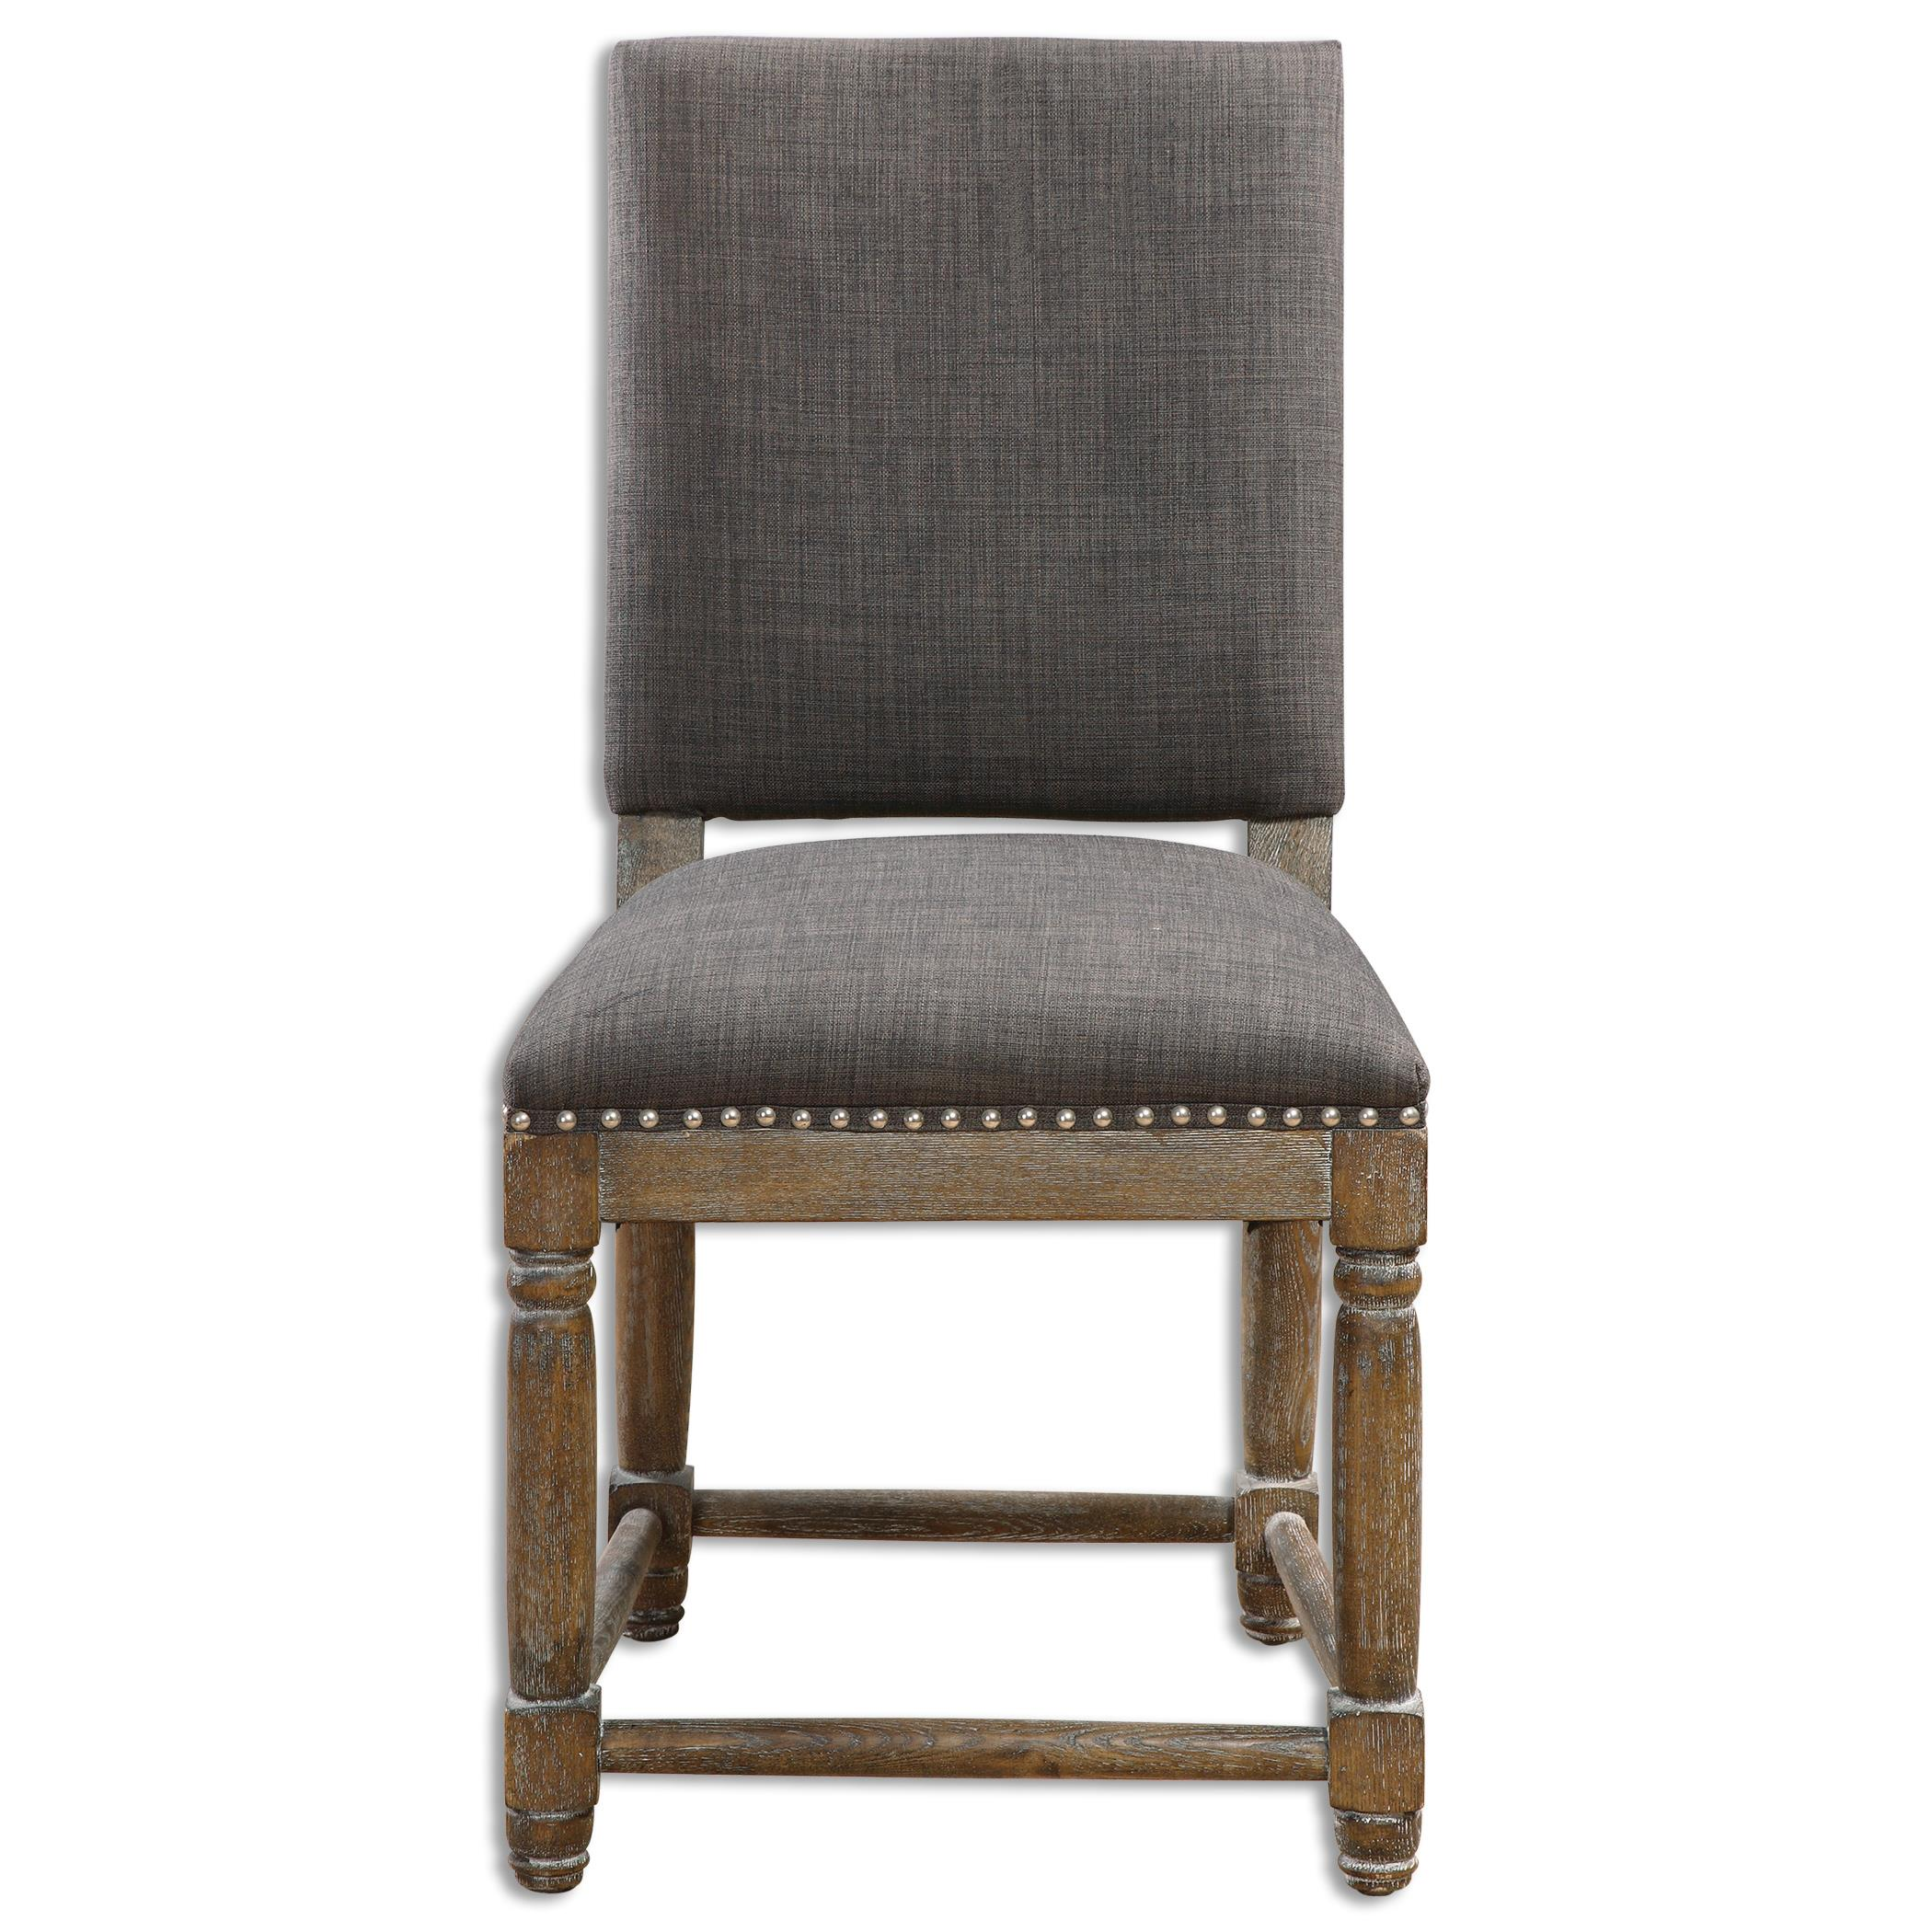 Accent Furniture - Accent Chairs Laurens Gray Accent Chair by Uttermost at Furniture Superstore - Rochester, MN